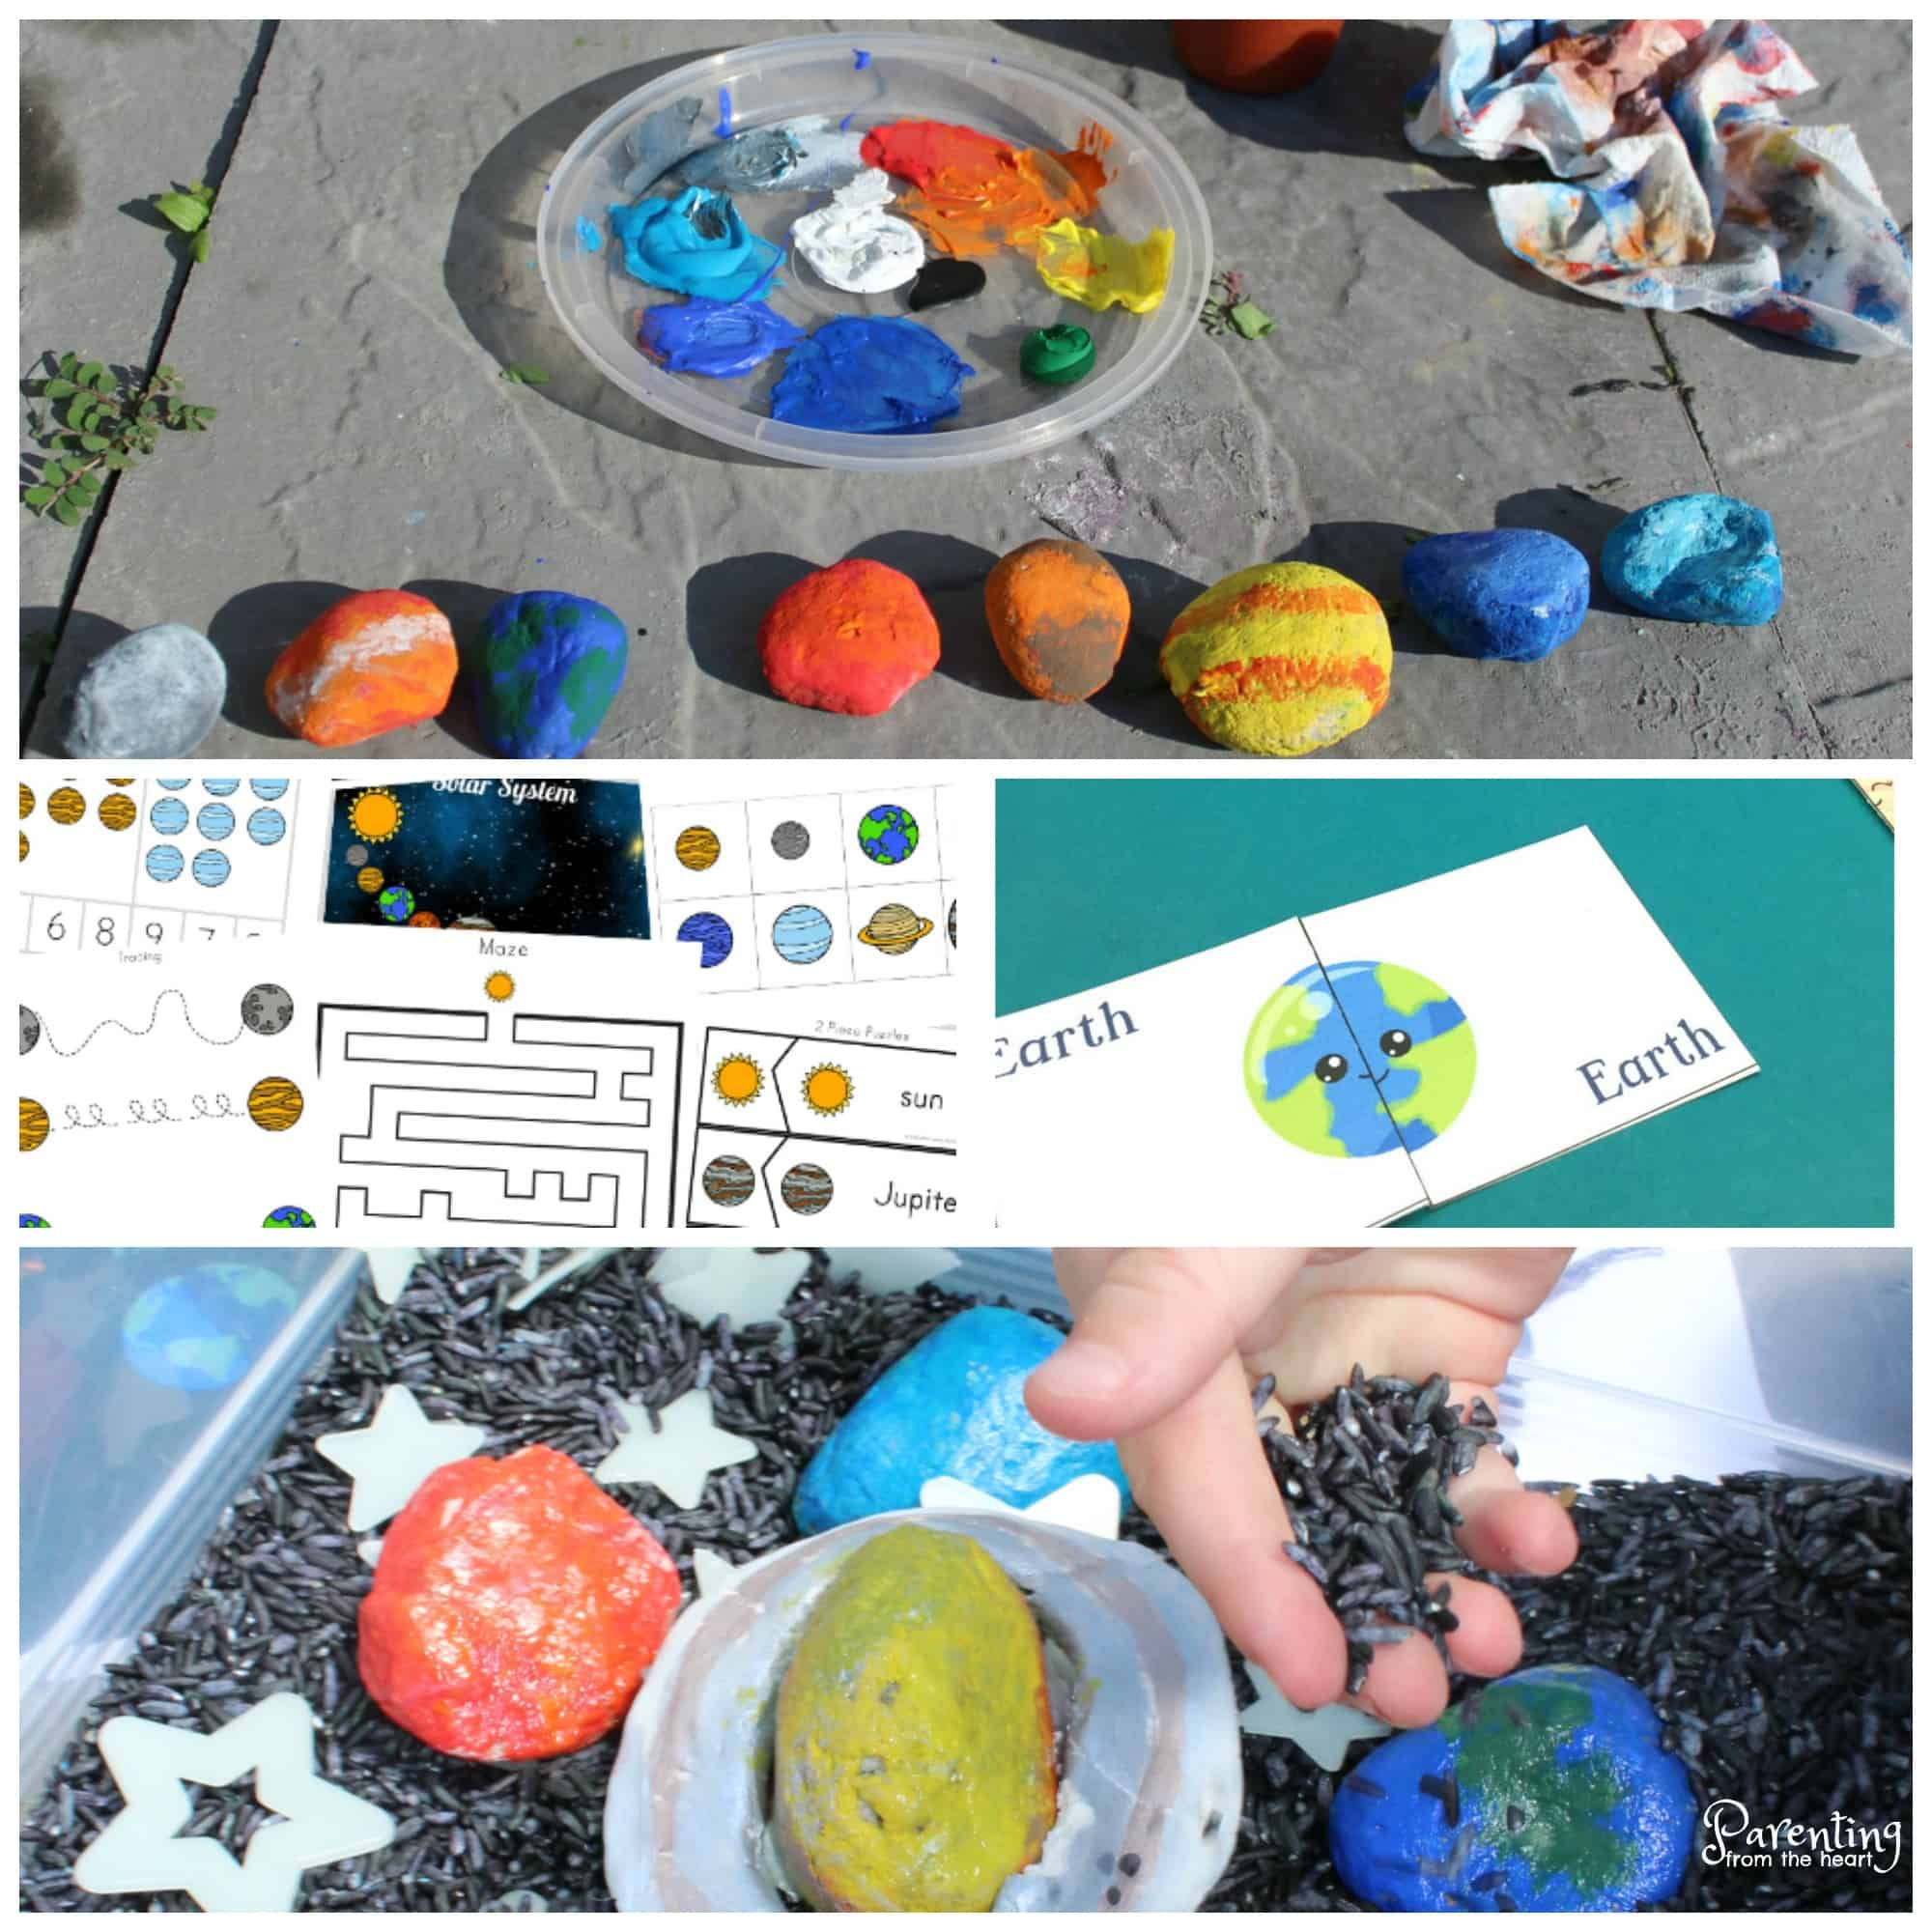 Solar System Worksheets: Free printables for preschoolers and older ...